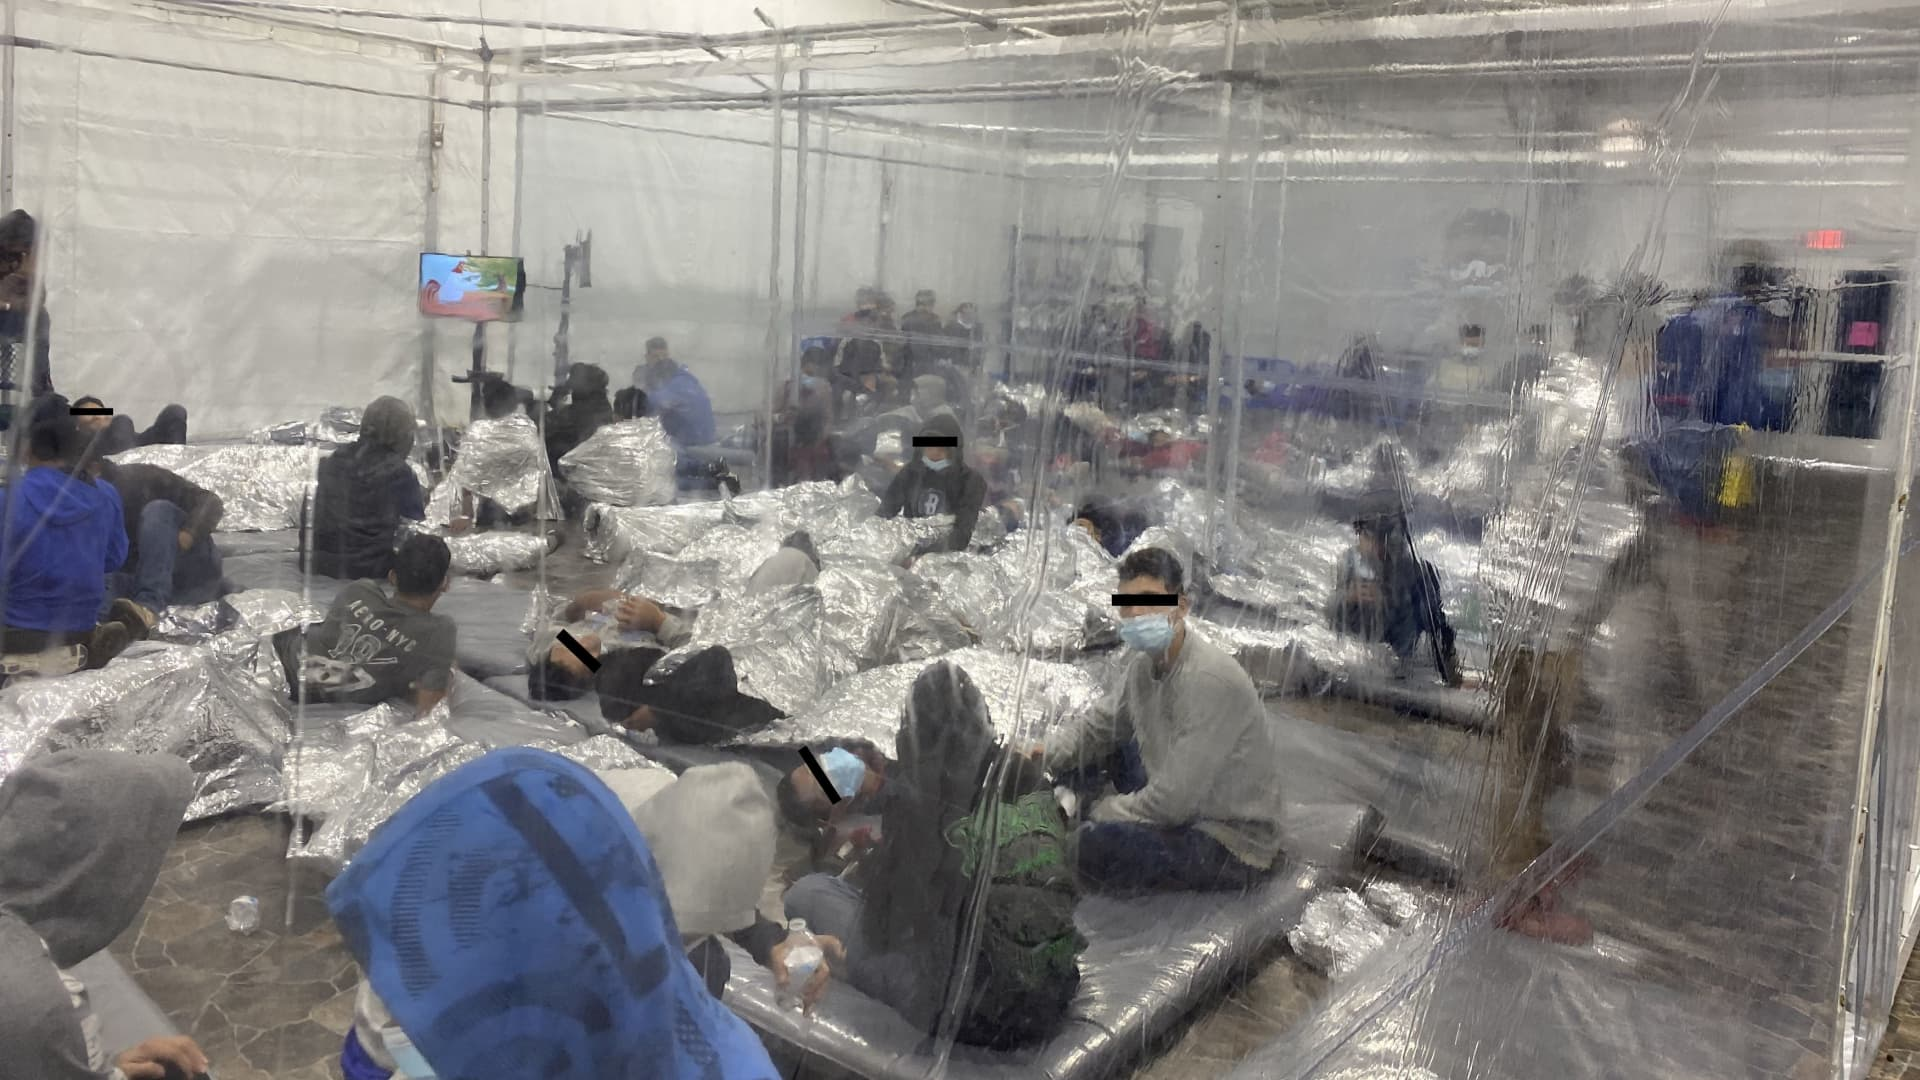 Migrants crowd a room with walls of plastic sheeting at the U.S. Customs and Border Protection temporary processing center in Donna, Texas, U.S. in a recent photograph released March 22, 2021.